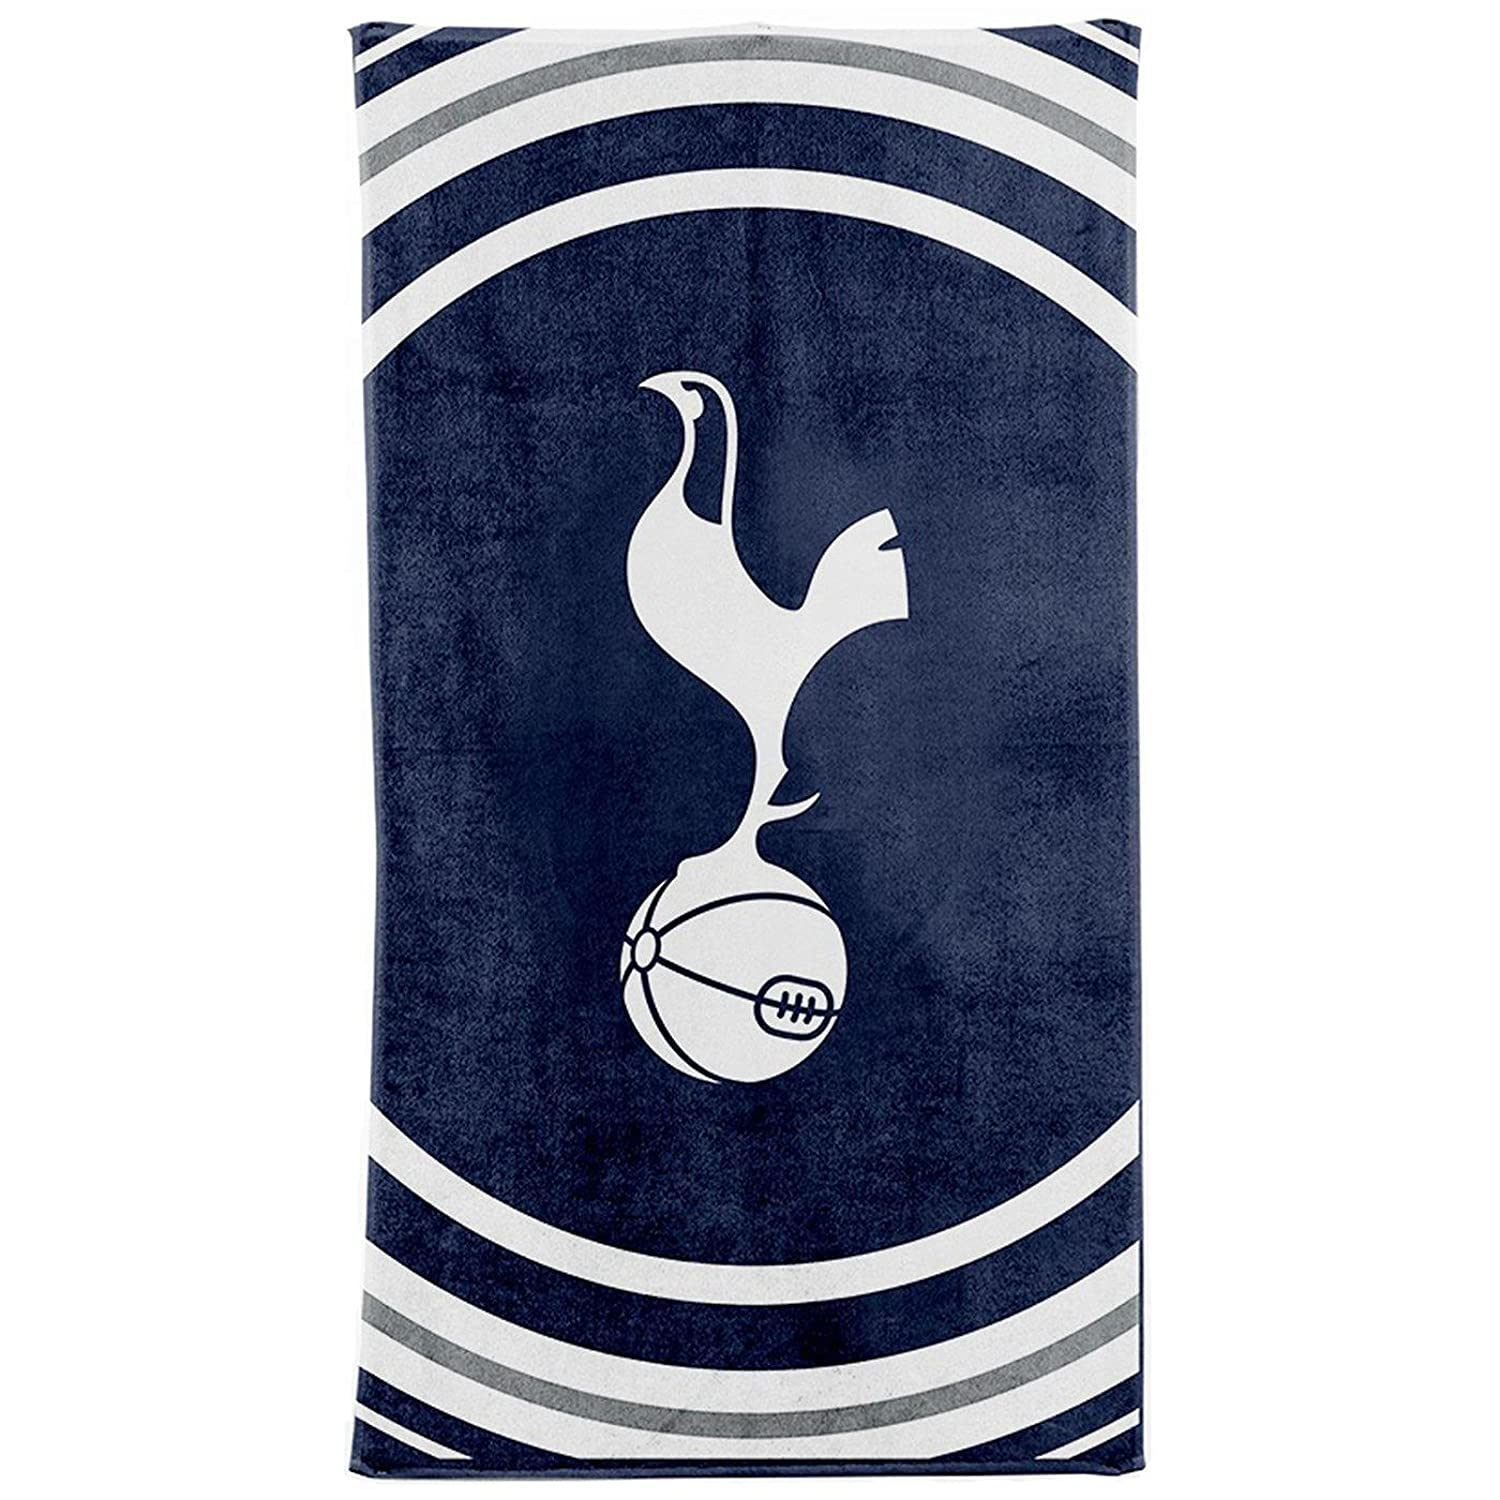 NEW 100% OFFICIAL FOOTBALL CLUB TEAM STRIP TOWELS BEACH BATH GYM SWIM LICENSED (Tottenham) EH-TO8K-KDT2